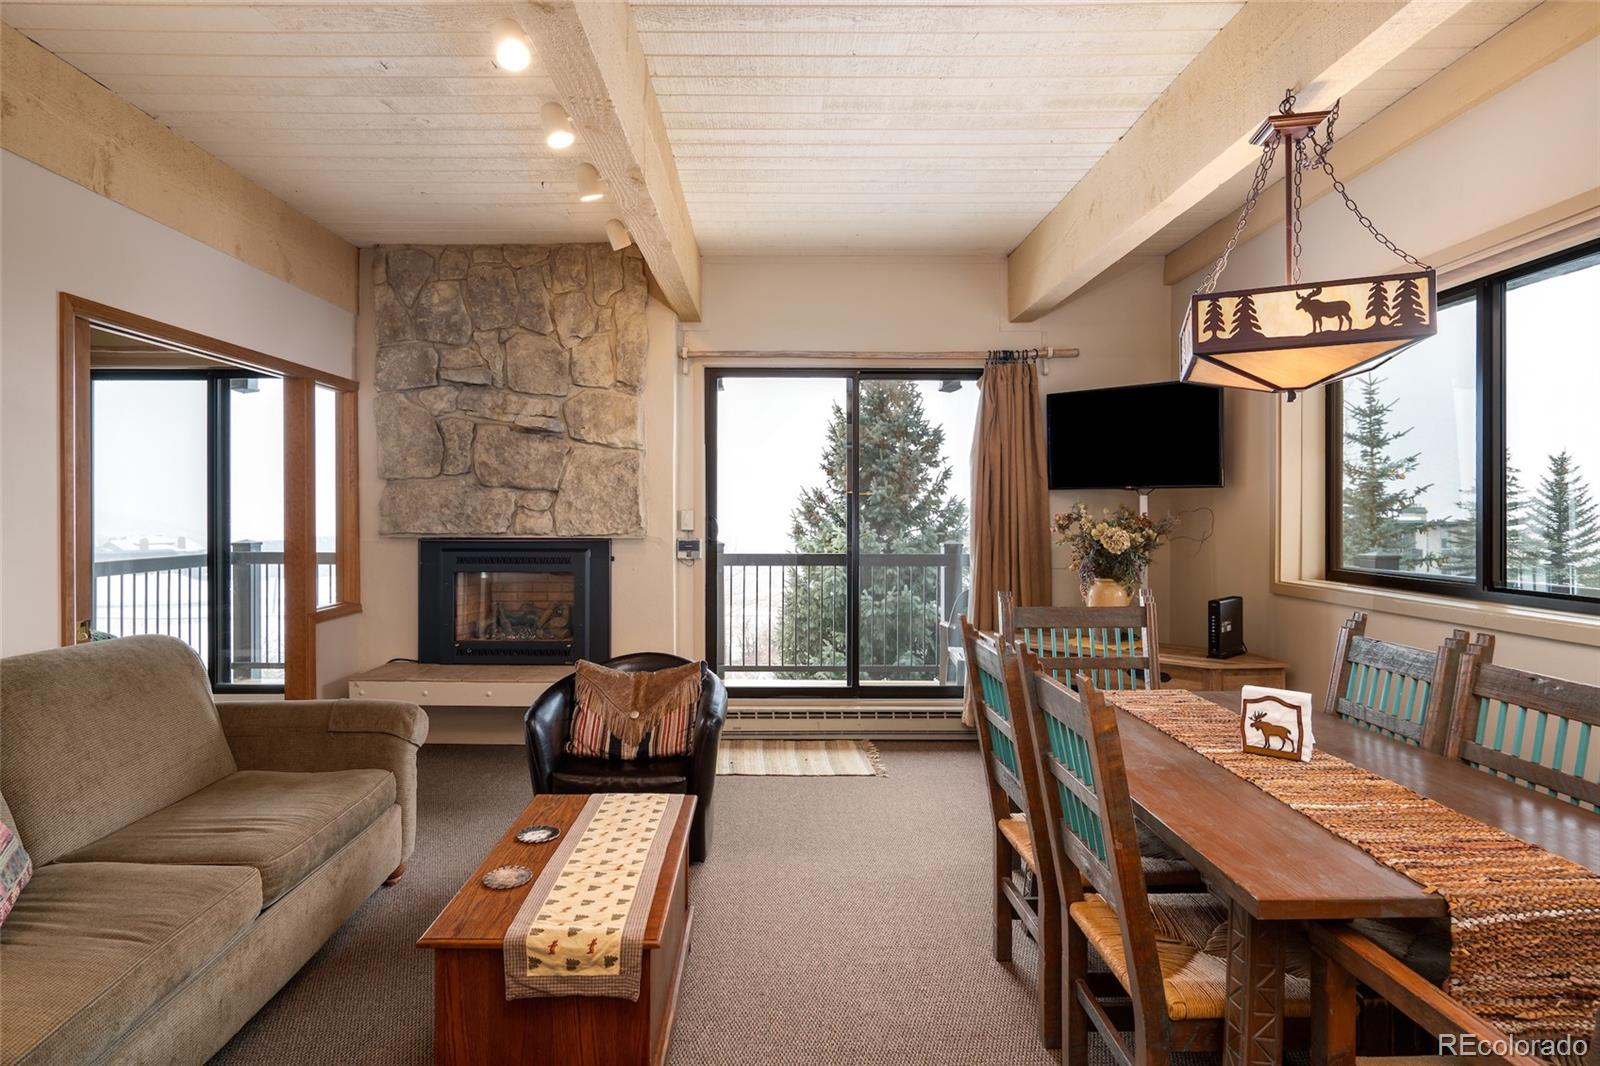 MLS# 8046163 - 5 - 2355 Storm Meadows Dr 311  #A-311, Steamboat Springs, CO 80487